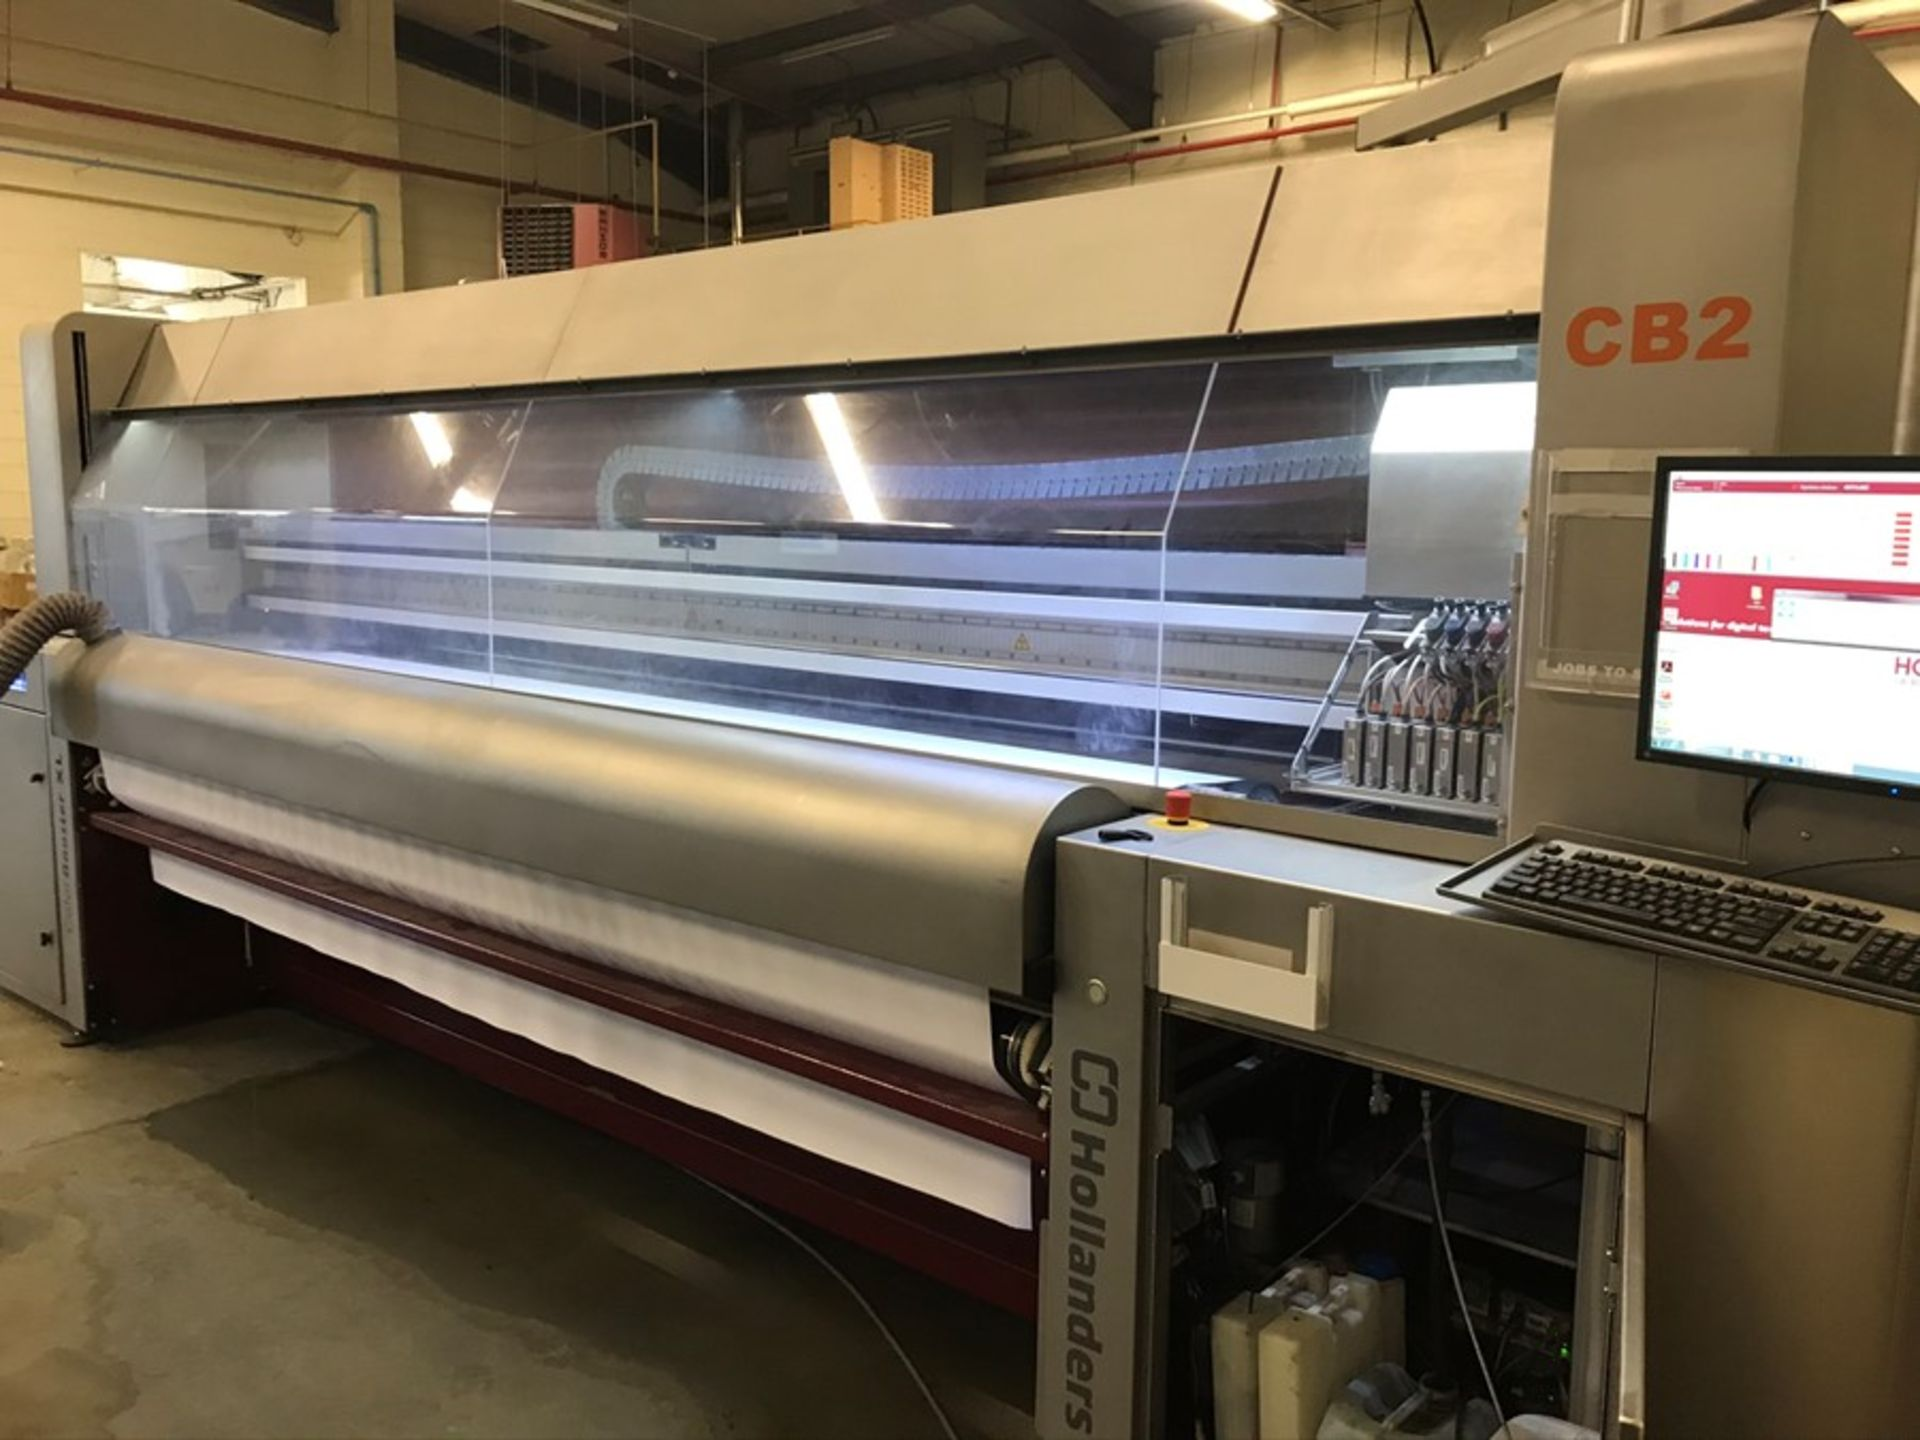 Hollanders Color Booster XL, Type B digital textile printer (2013) - Image 2 of 12